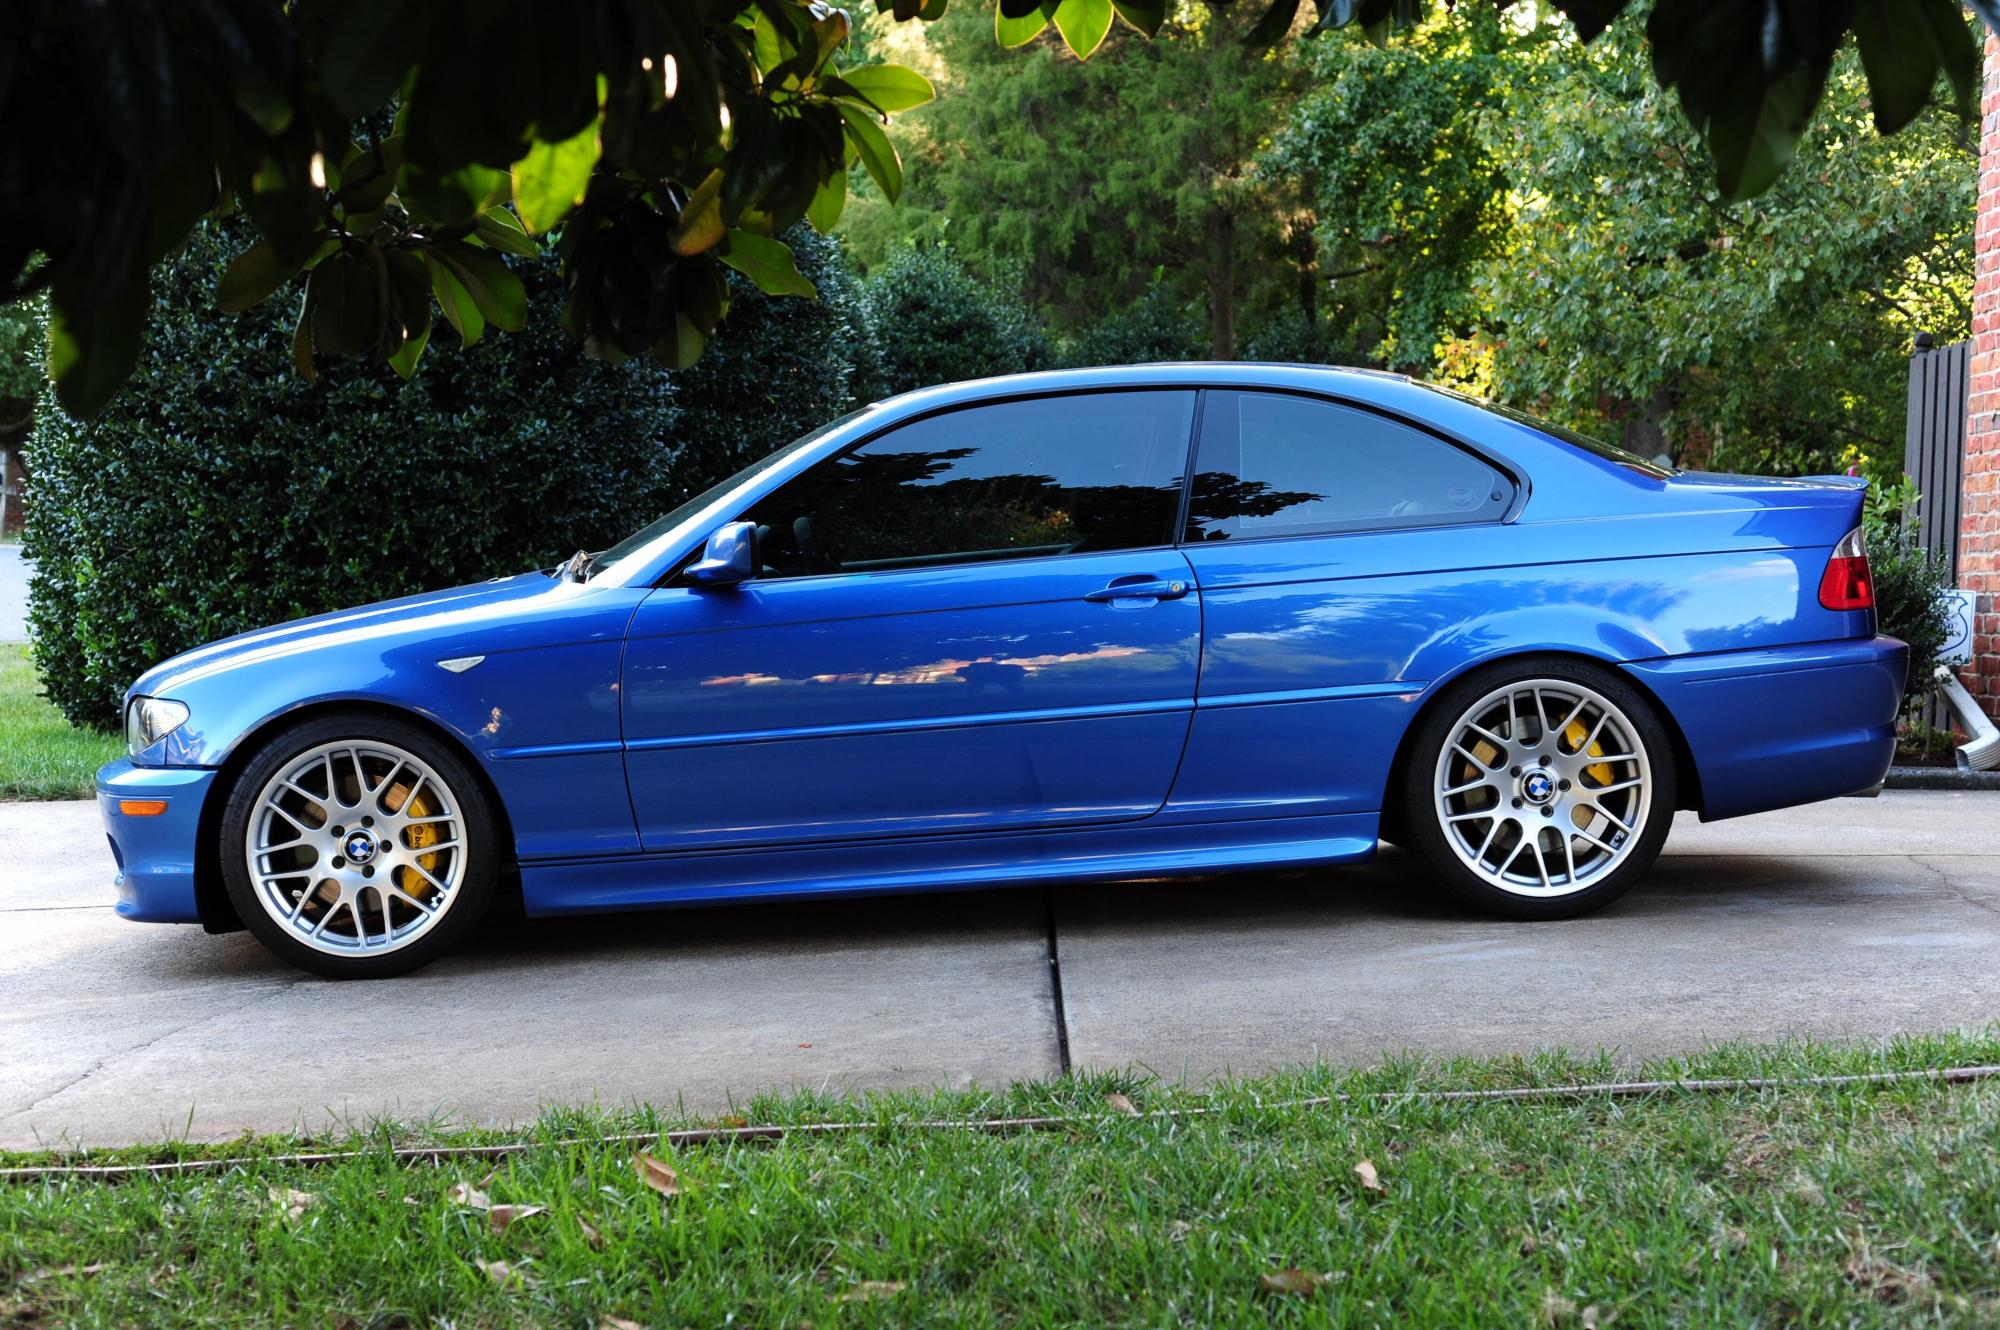 hight resolution of fresh wash friday 05 estoril blue zhp